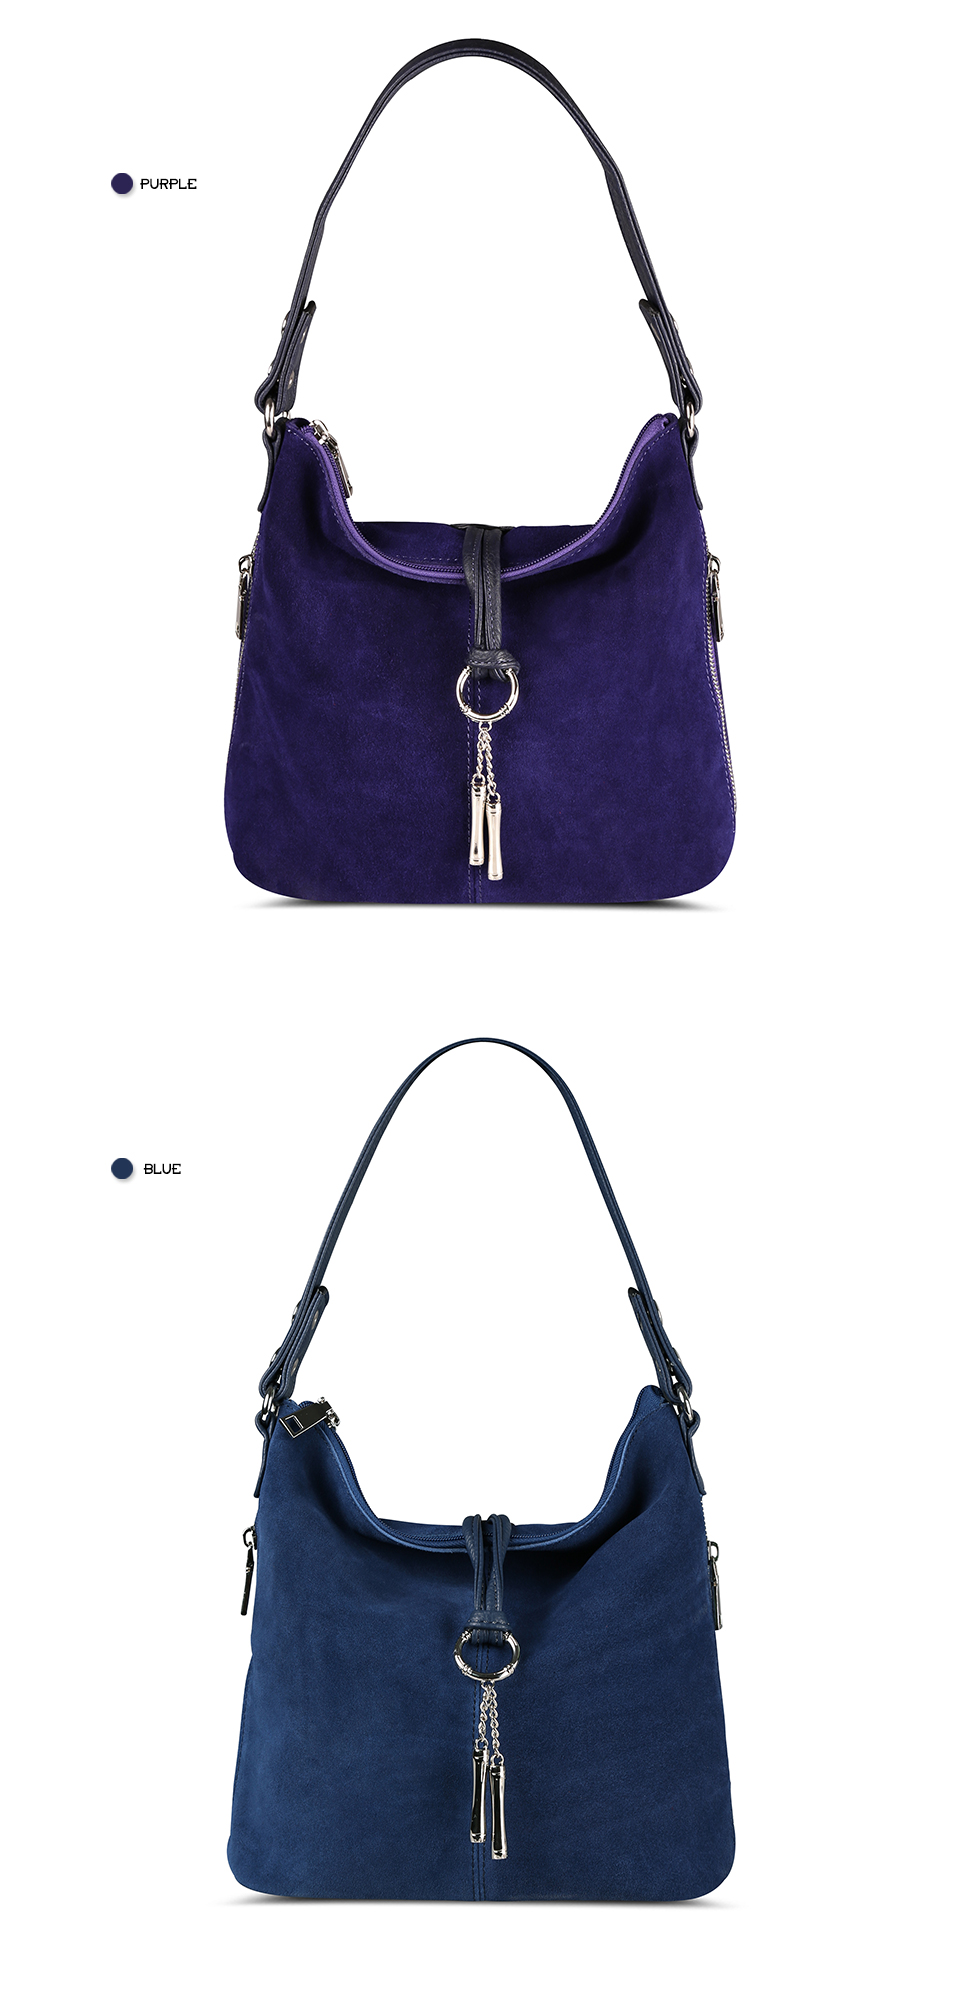 HTB1mhRJcgoSMeJjSspaq6zMOFXai - Fashion Women Split Leather Shoulder Bag Female Suede Casual Crossbody handbag Casual Lady Messenger Hobo Top-handle Bags